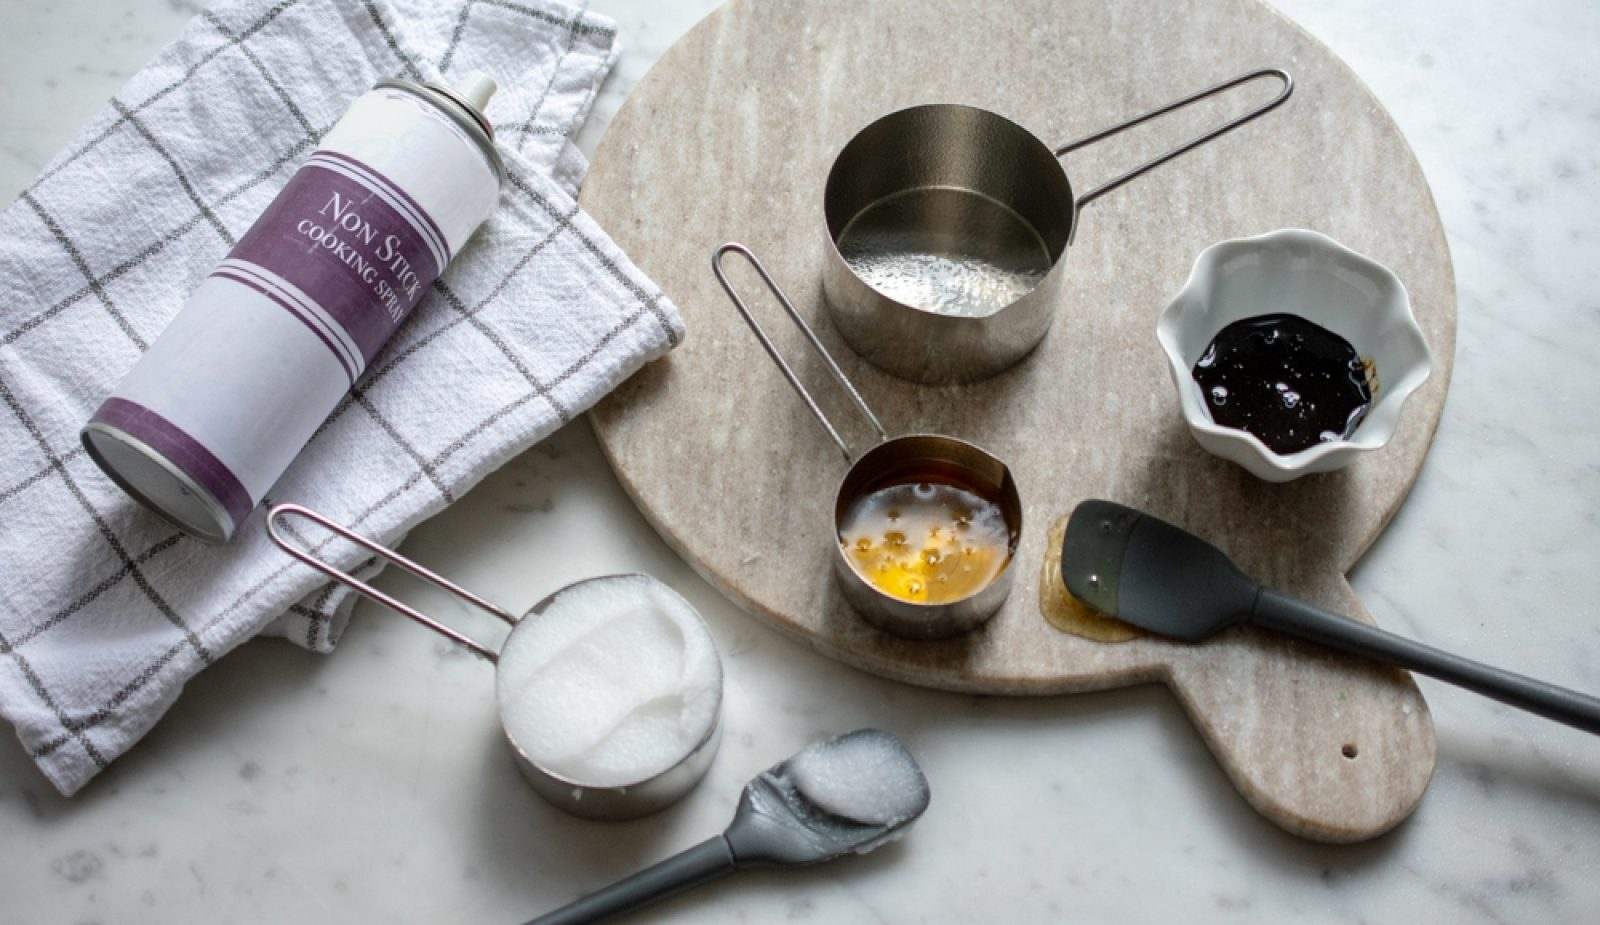 A Clever Trick for Measuring Sticky Ingredients